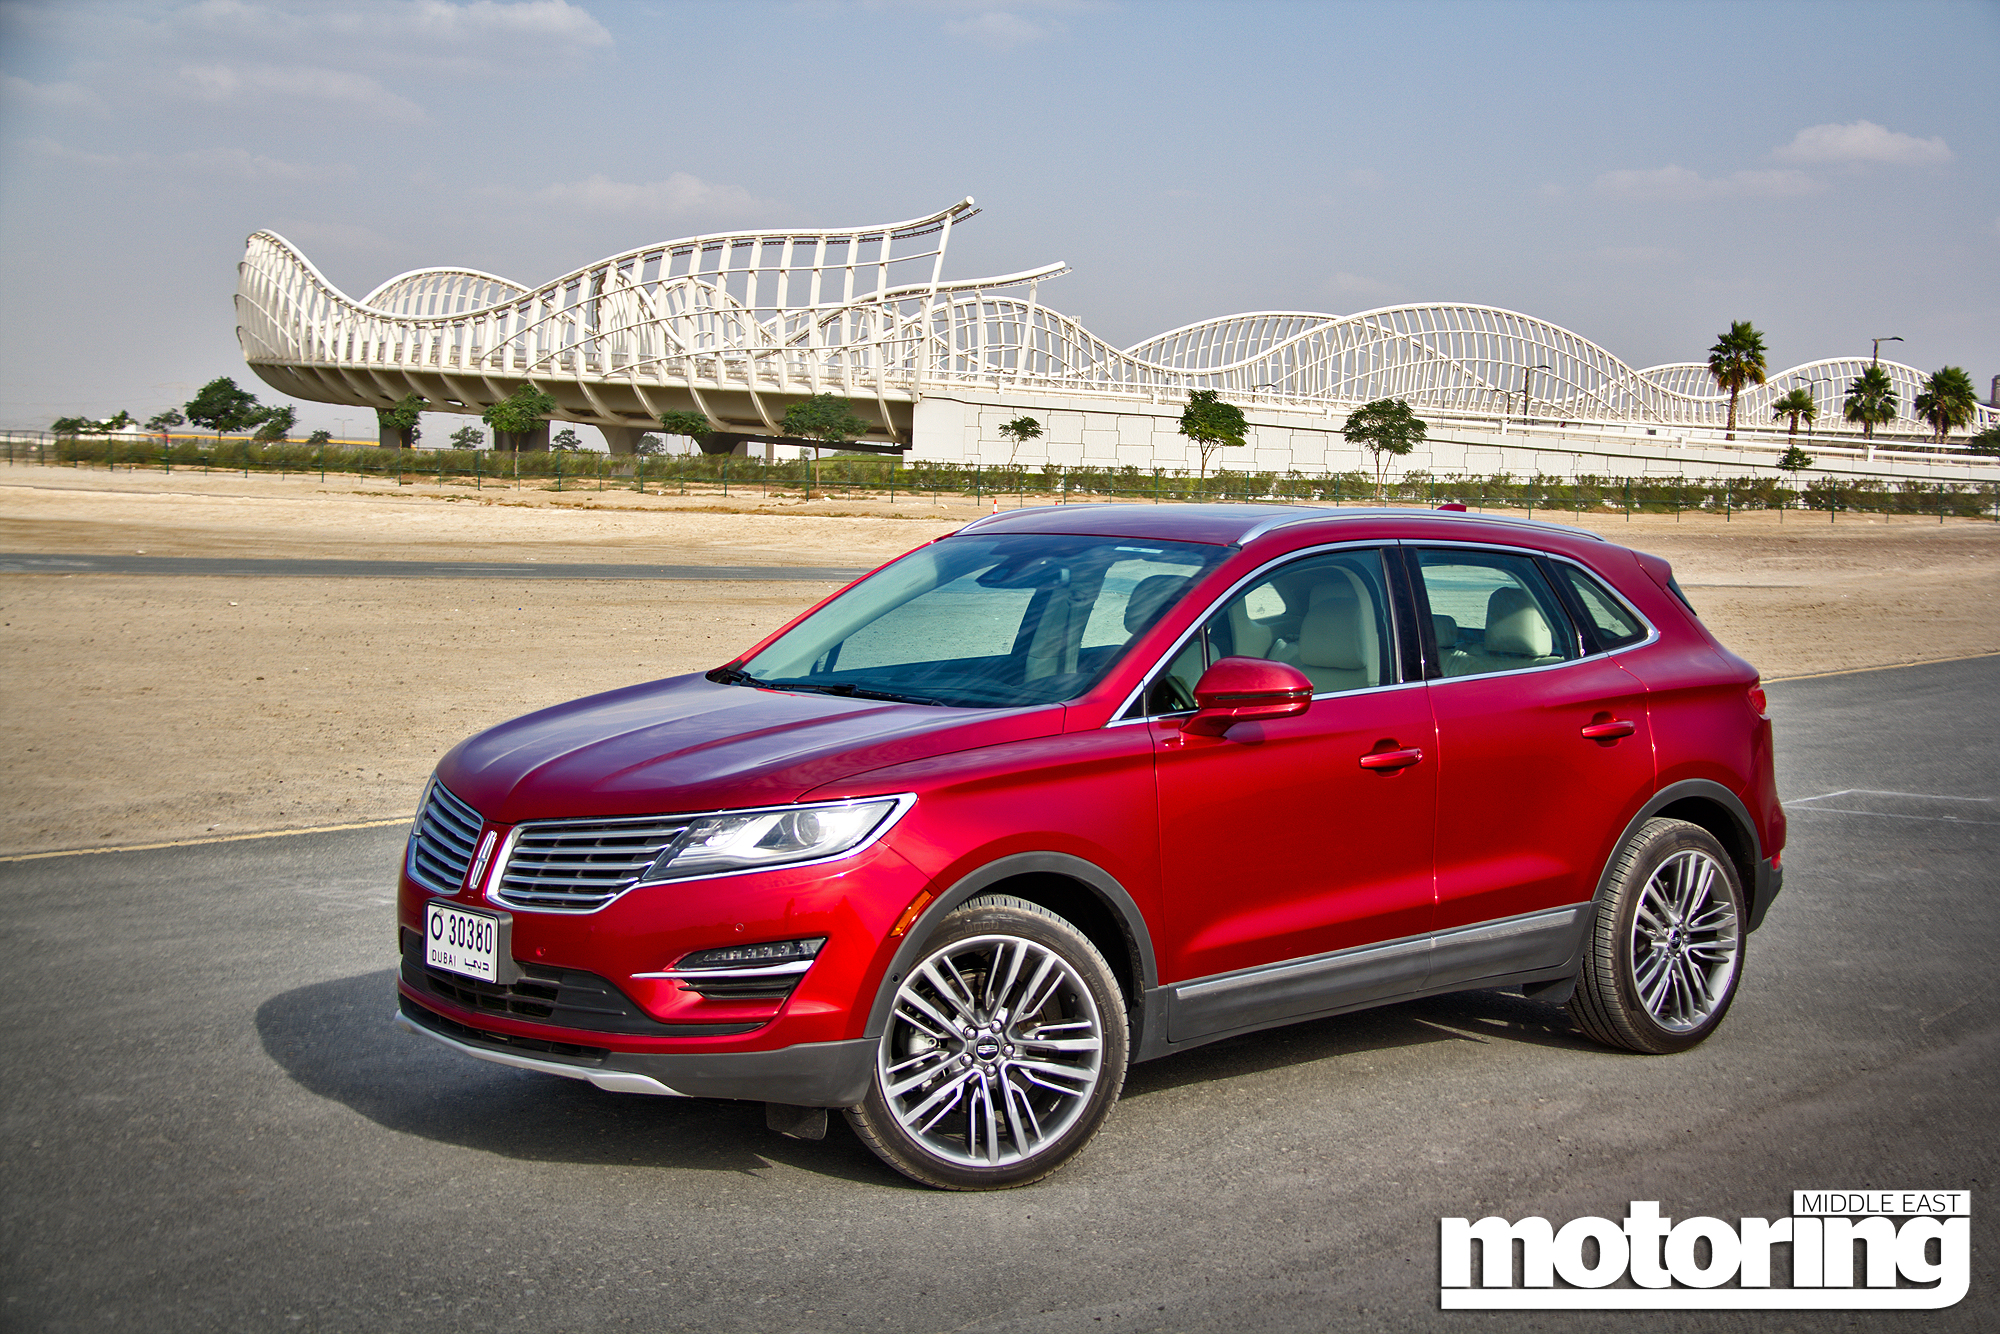 2015 lincoln mkc review with specs pics and videomotoring middle east car news reviews and. Black Bedroom Furniture Sets. Home Design Ideas